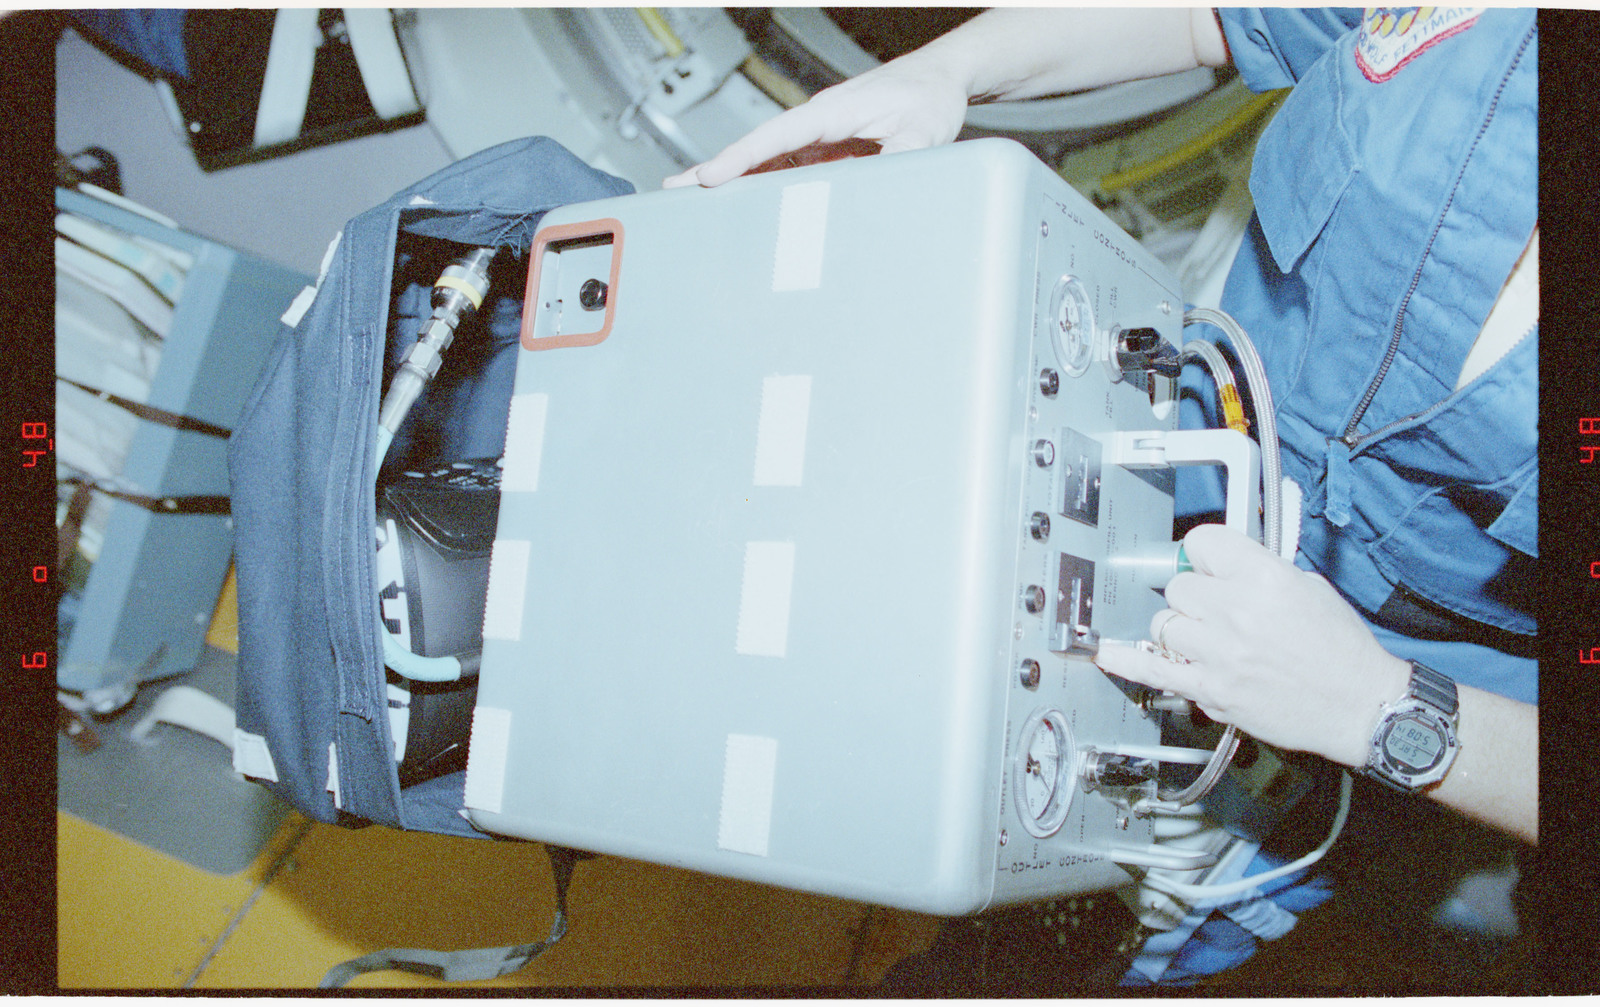 STS058-210-034 - STS-058 - Crewmembers in the SPACELAB setting up the exerciser expelled gas analyzer.